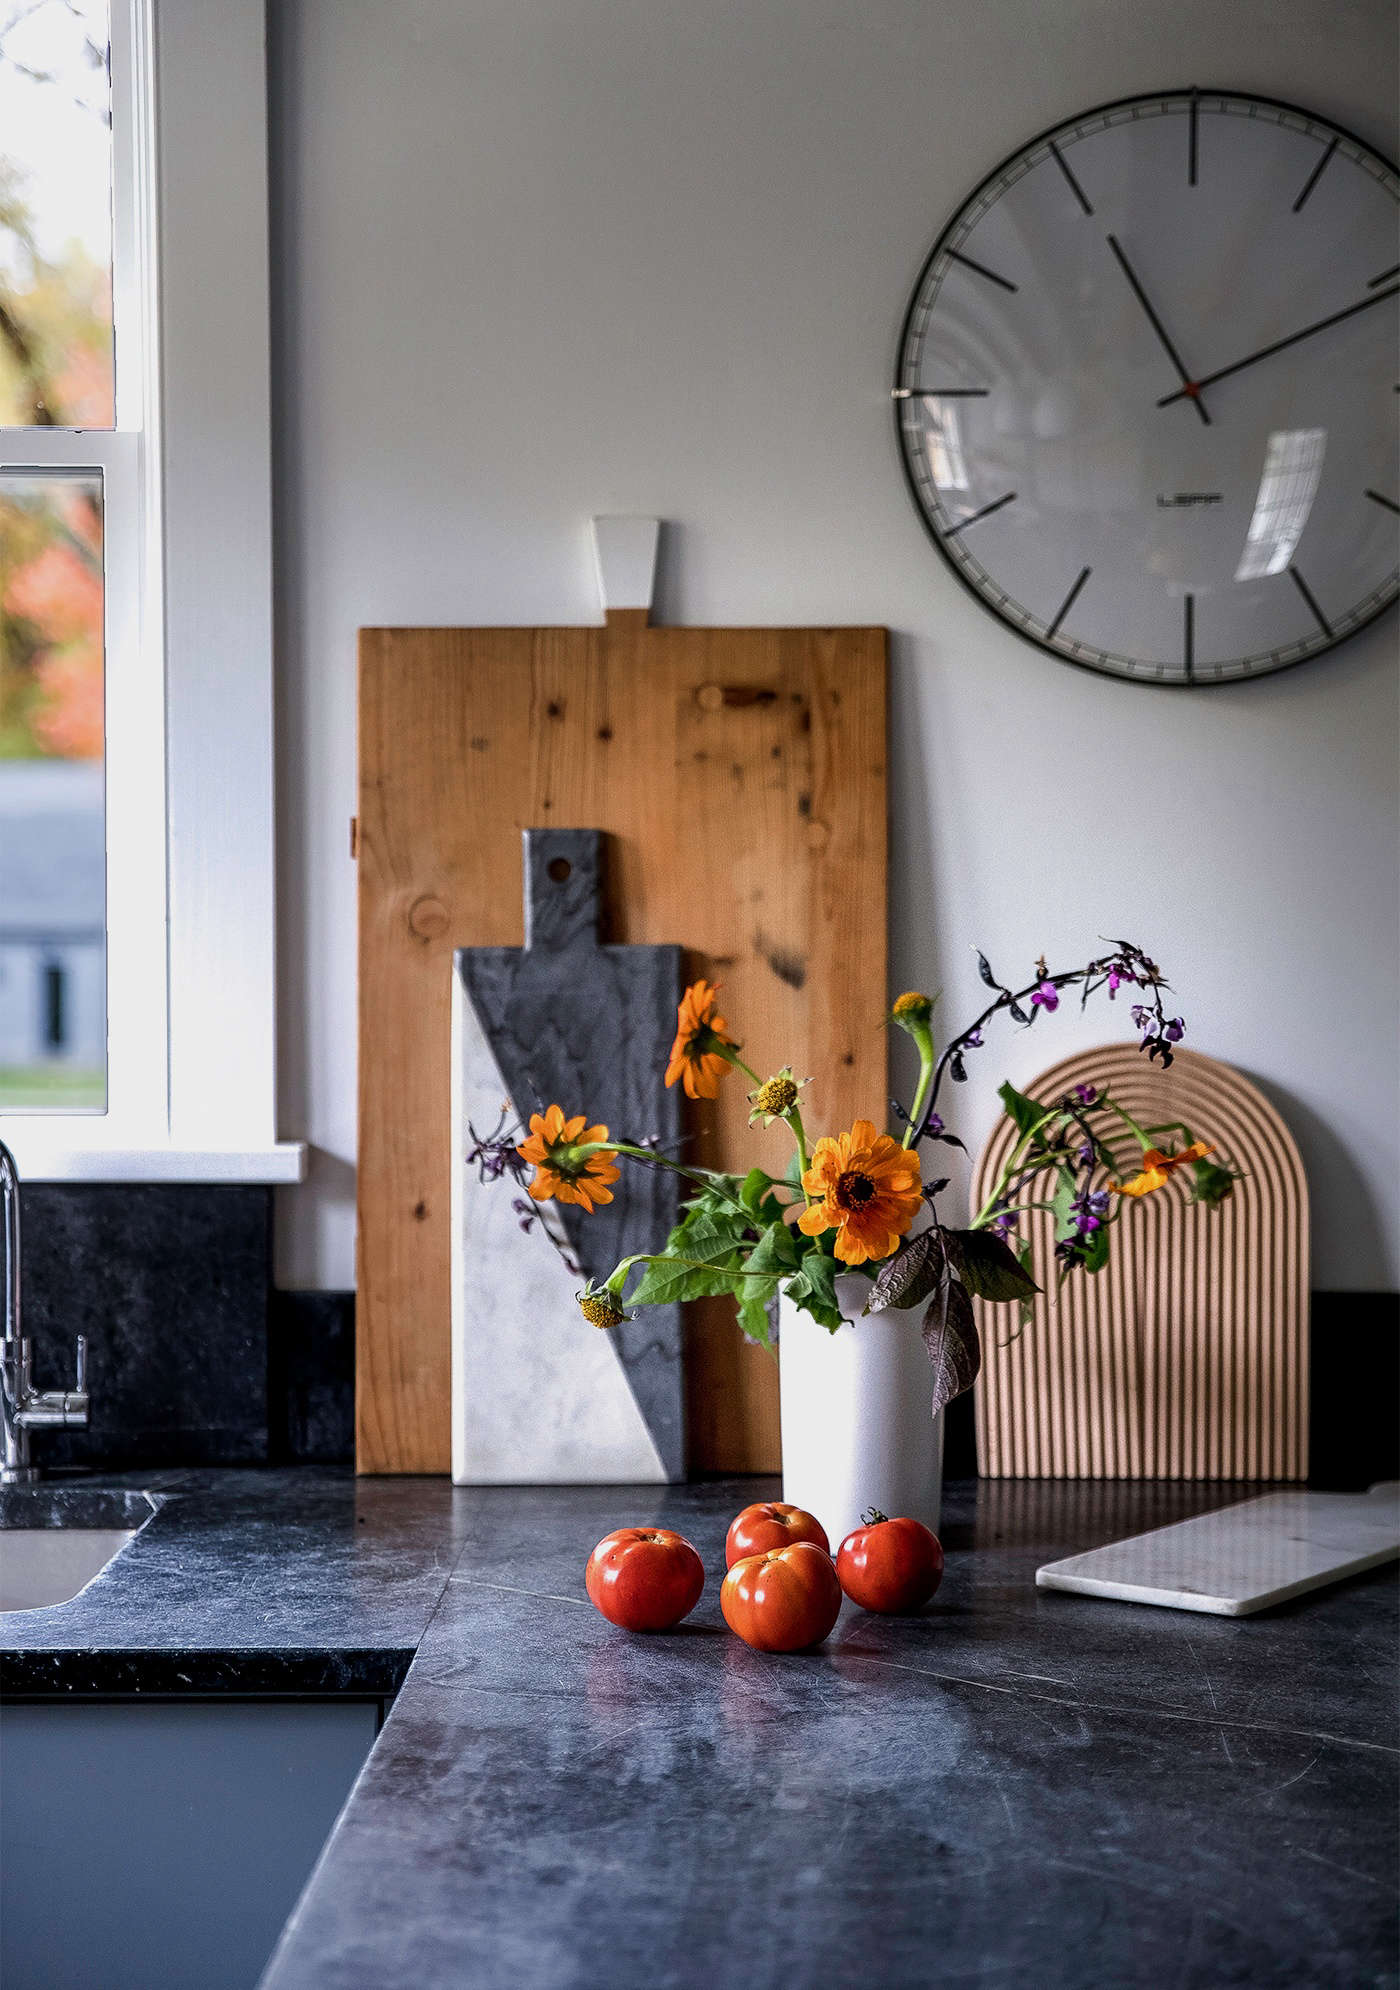 Bounty from Dunja's garden: Tomatoes and flowers add a bit of autumnal color. Against the wall rest a vintage cutting board, which Dunja bought at Brimfield, a two-toned marble board by Jonathan Adler, Hay's Field Cutting Board (available at Finnish Design Shop; $60) and another smaller marble board from Hammertown in Rhinebeck. Leff's Large Index Wall Clock is available at Lumens; $99.